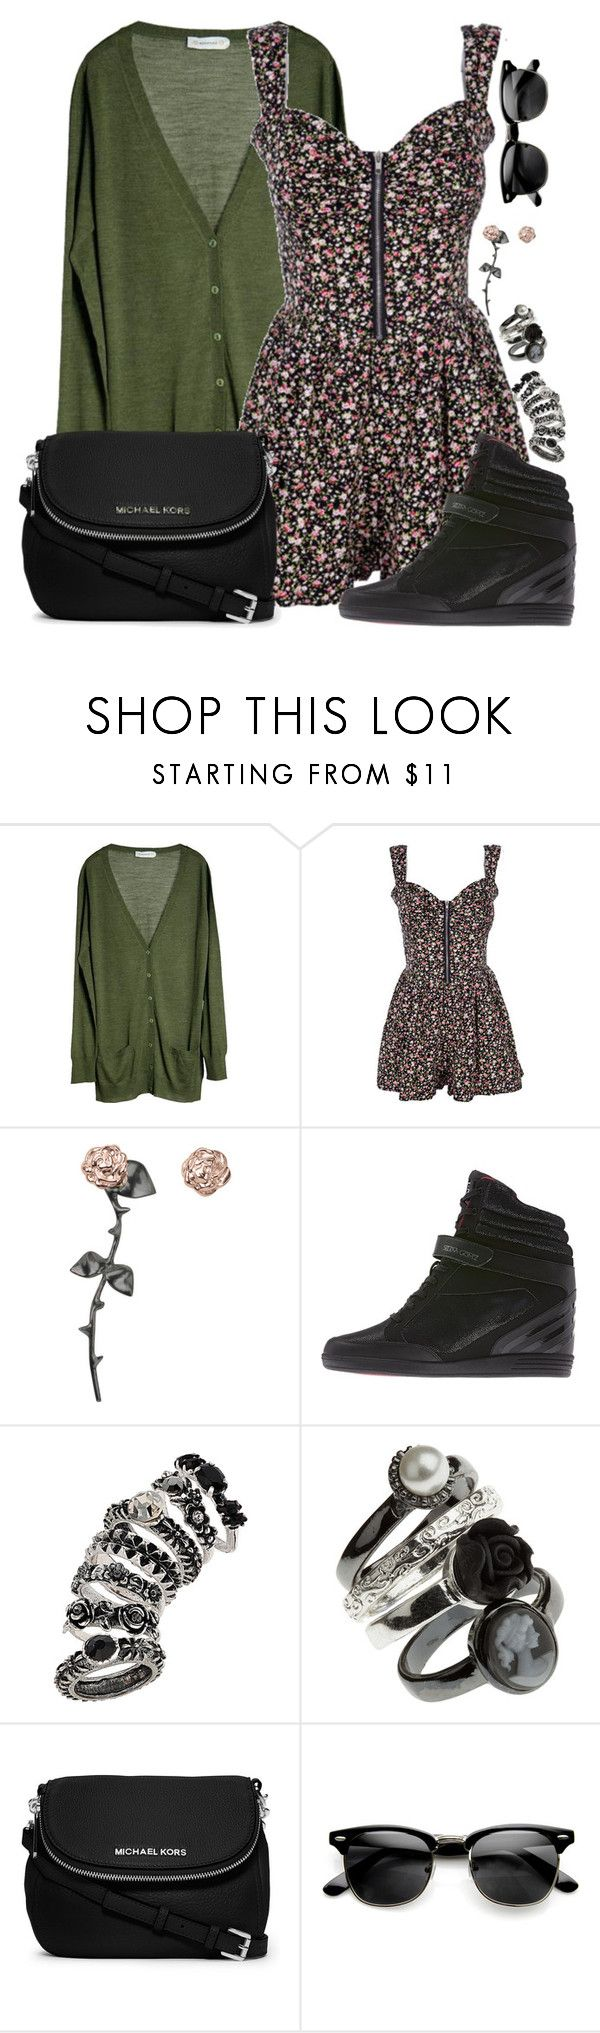 """""""We can get through this tonight. I will be the anchor to your runaway train tonight. I will be the beacon when you're feeling insane. I know it hurts sometimes, so i'll get in line with you."""" by rocketsheep ❤ liked on Polyvore featuring MÃ¥nestrÃ¥le, Smith/Grey, adidas, Topshop, MICHAEL Michael Kors, michaelkors, selenagomez, lyrics and thewordalive"""